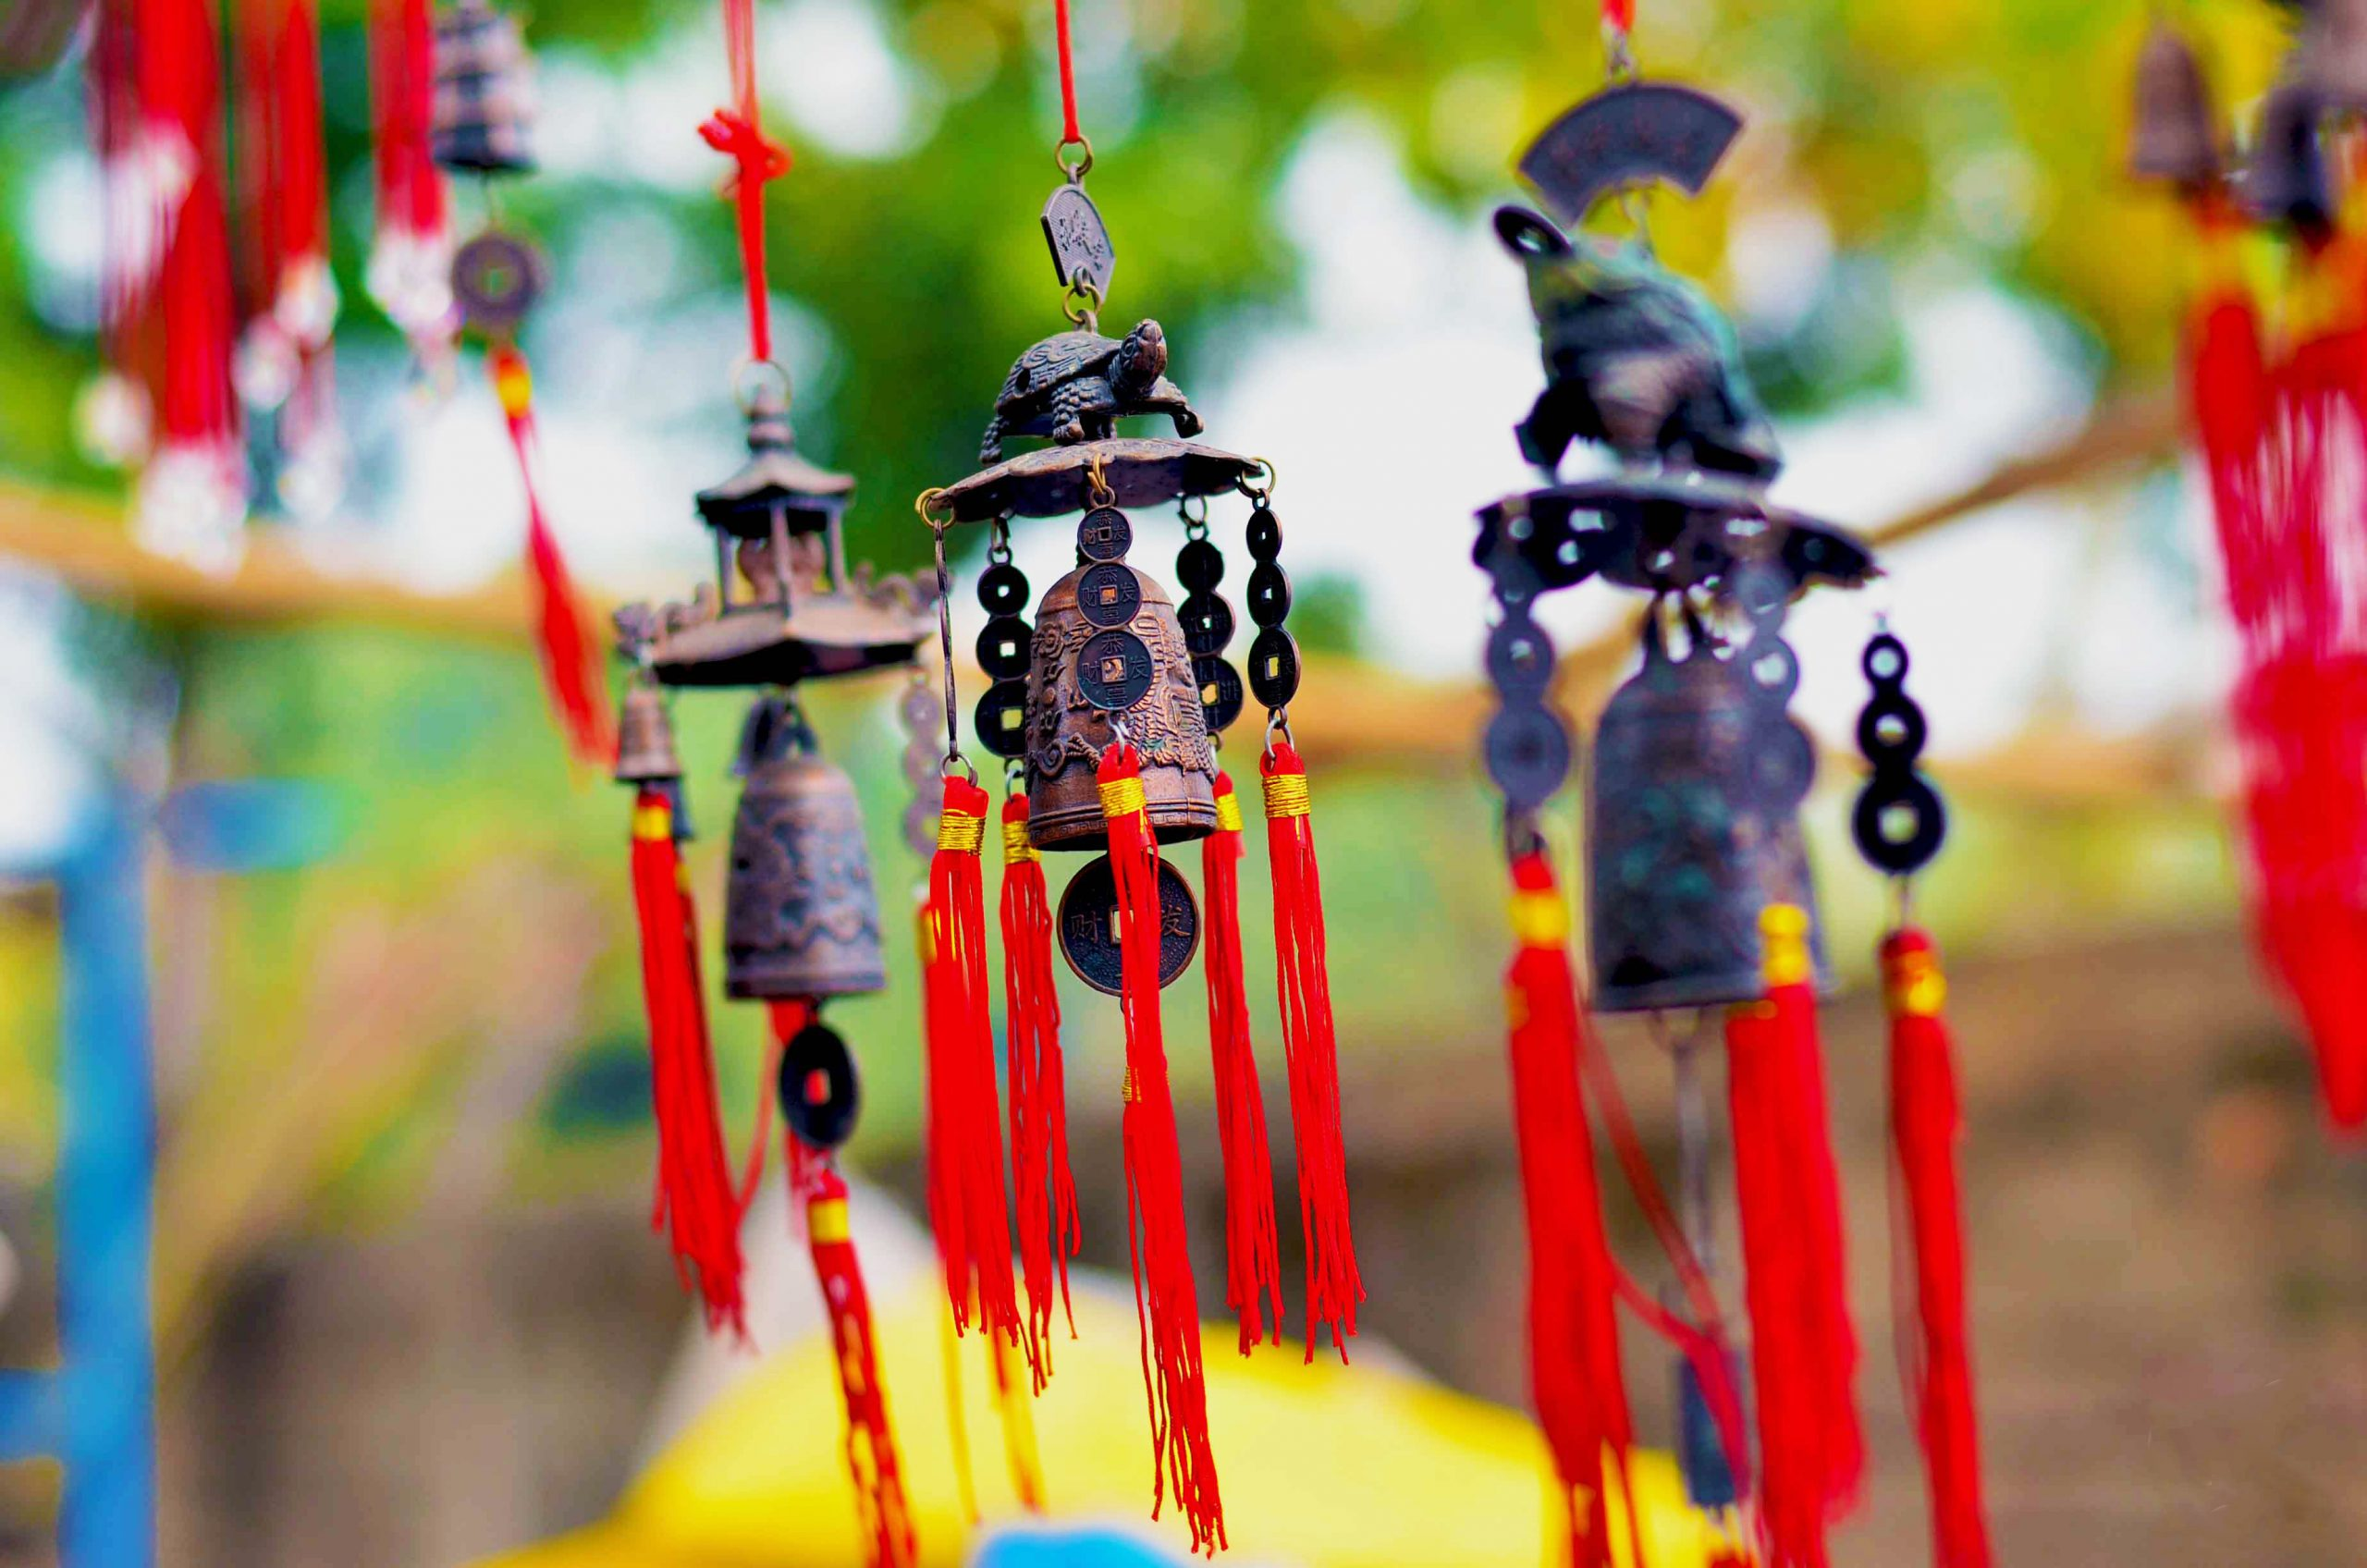 Traditional Wind Chimes on Focus